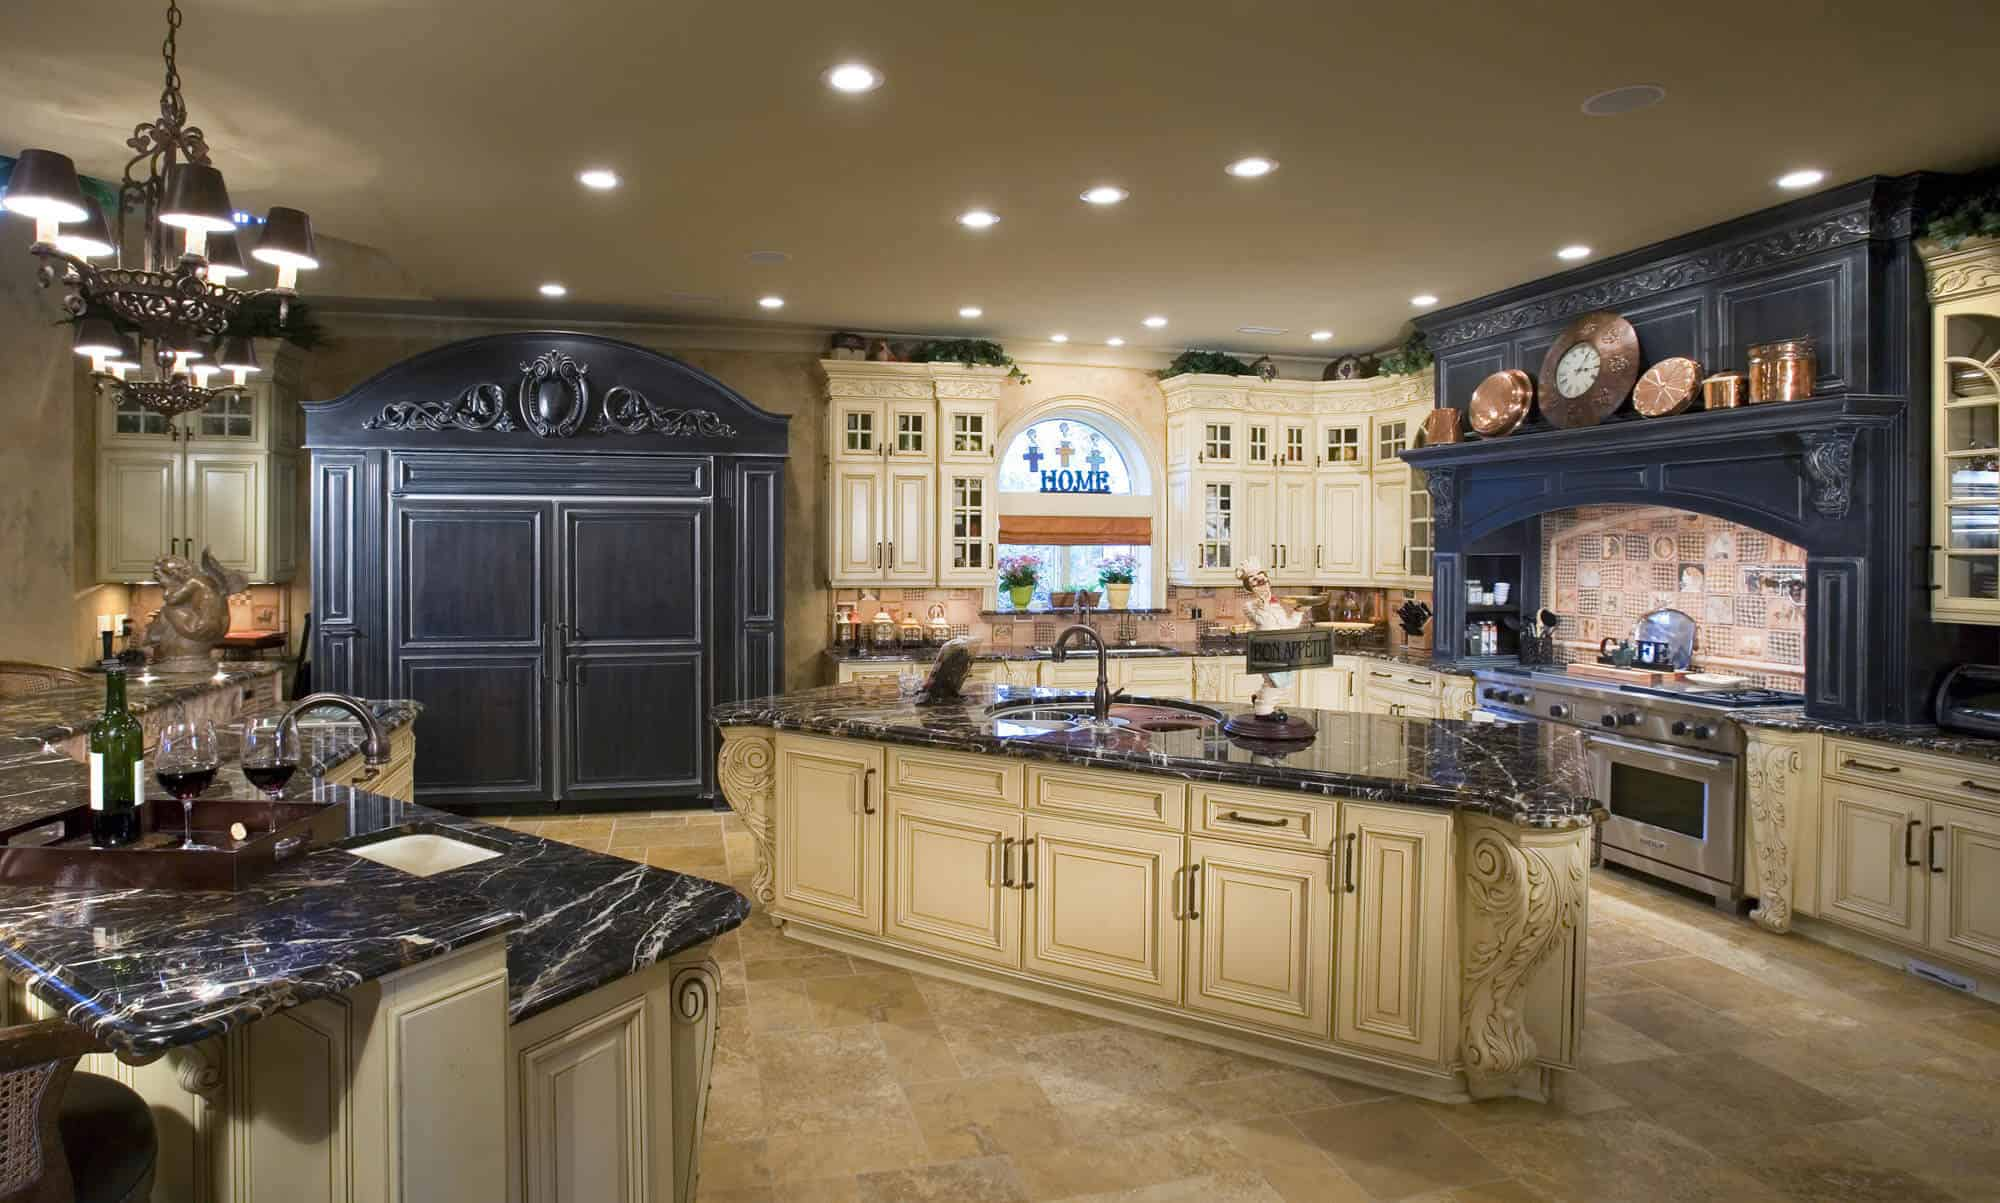 Designed Kitchens. For a more traditional and larger kitchen consider ornate design elements  blend it with modern Kitchen Design Renovating Ideas Gentleman s Gazette